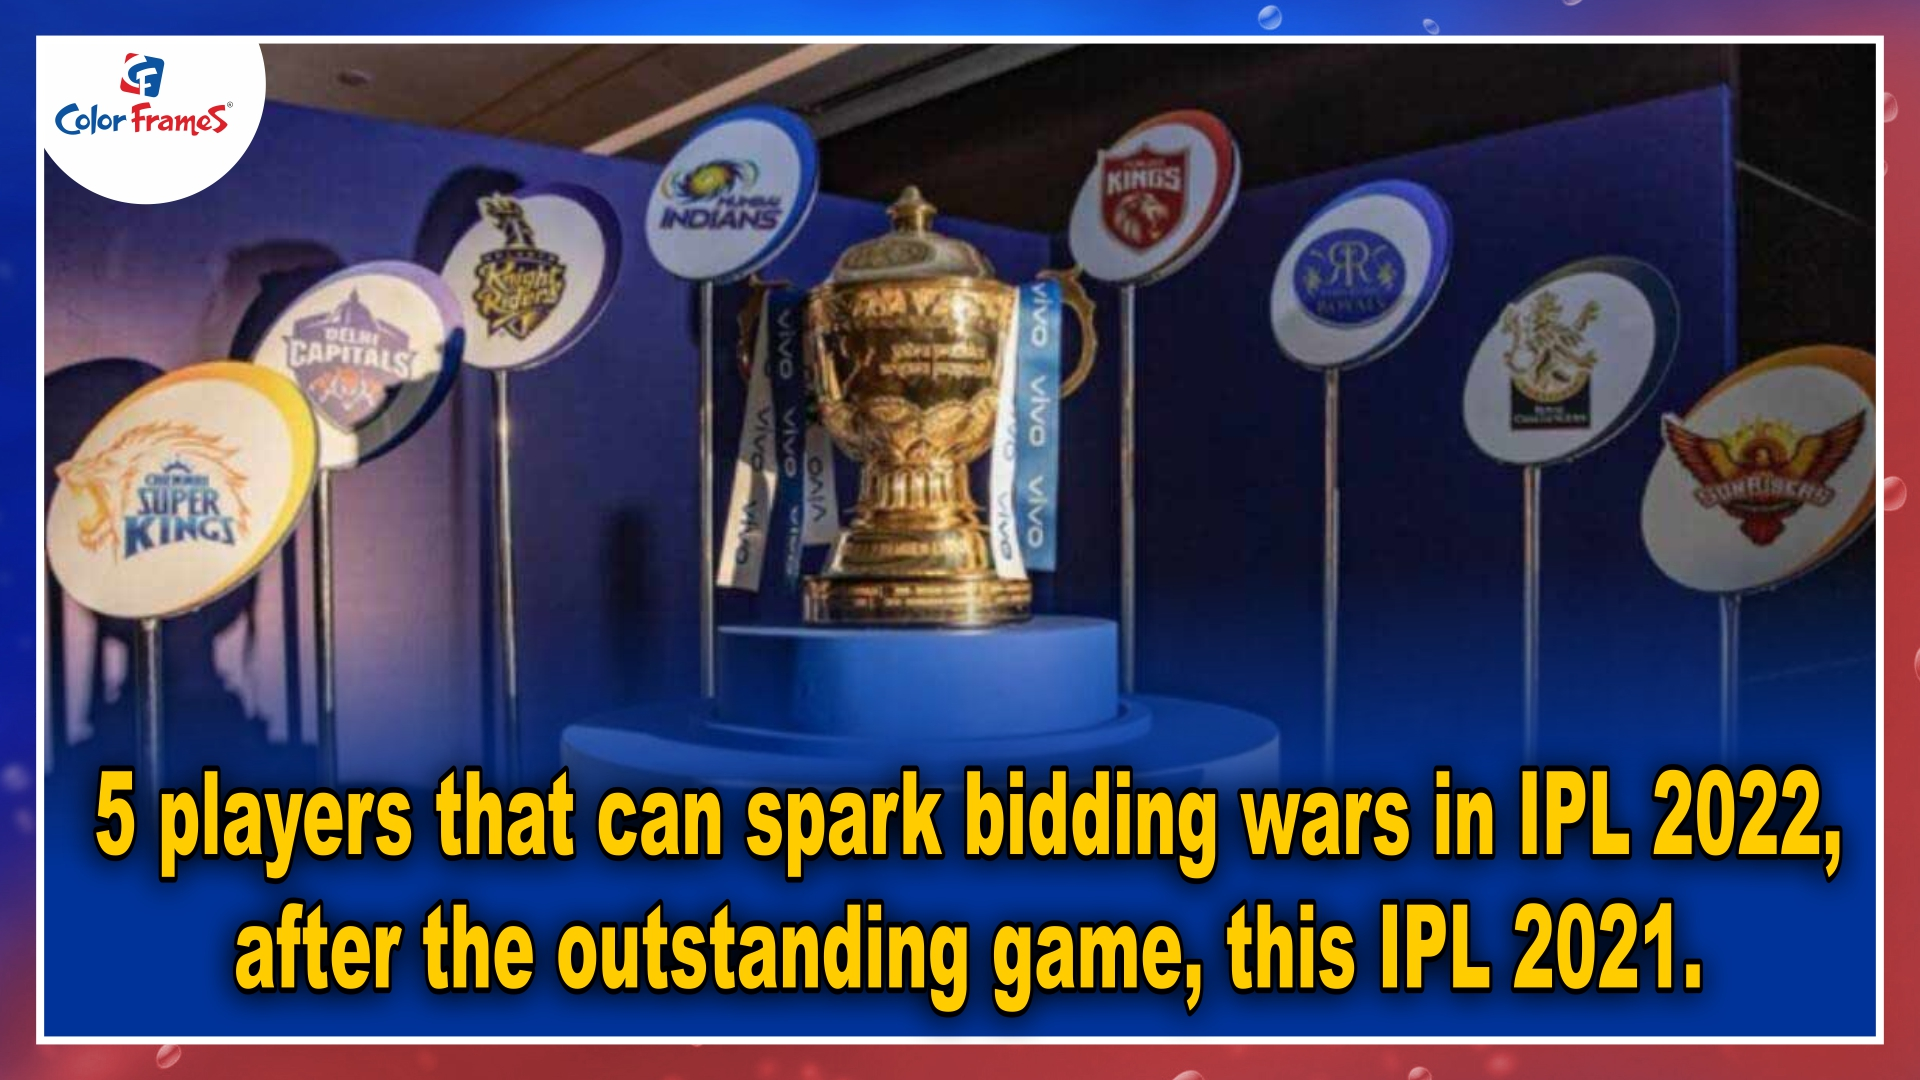 5 players that can spark bidding wars in IPL 2022, after the outstanding game, this IPL 2021.